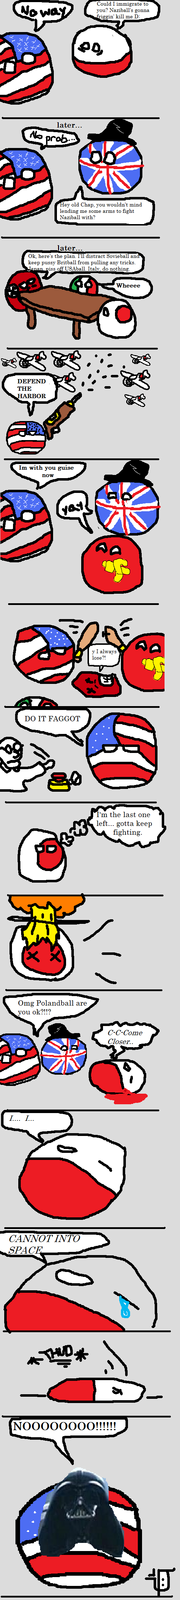 pollball_EPIC.png